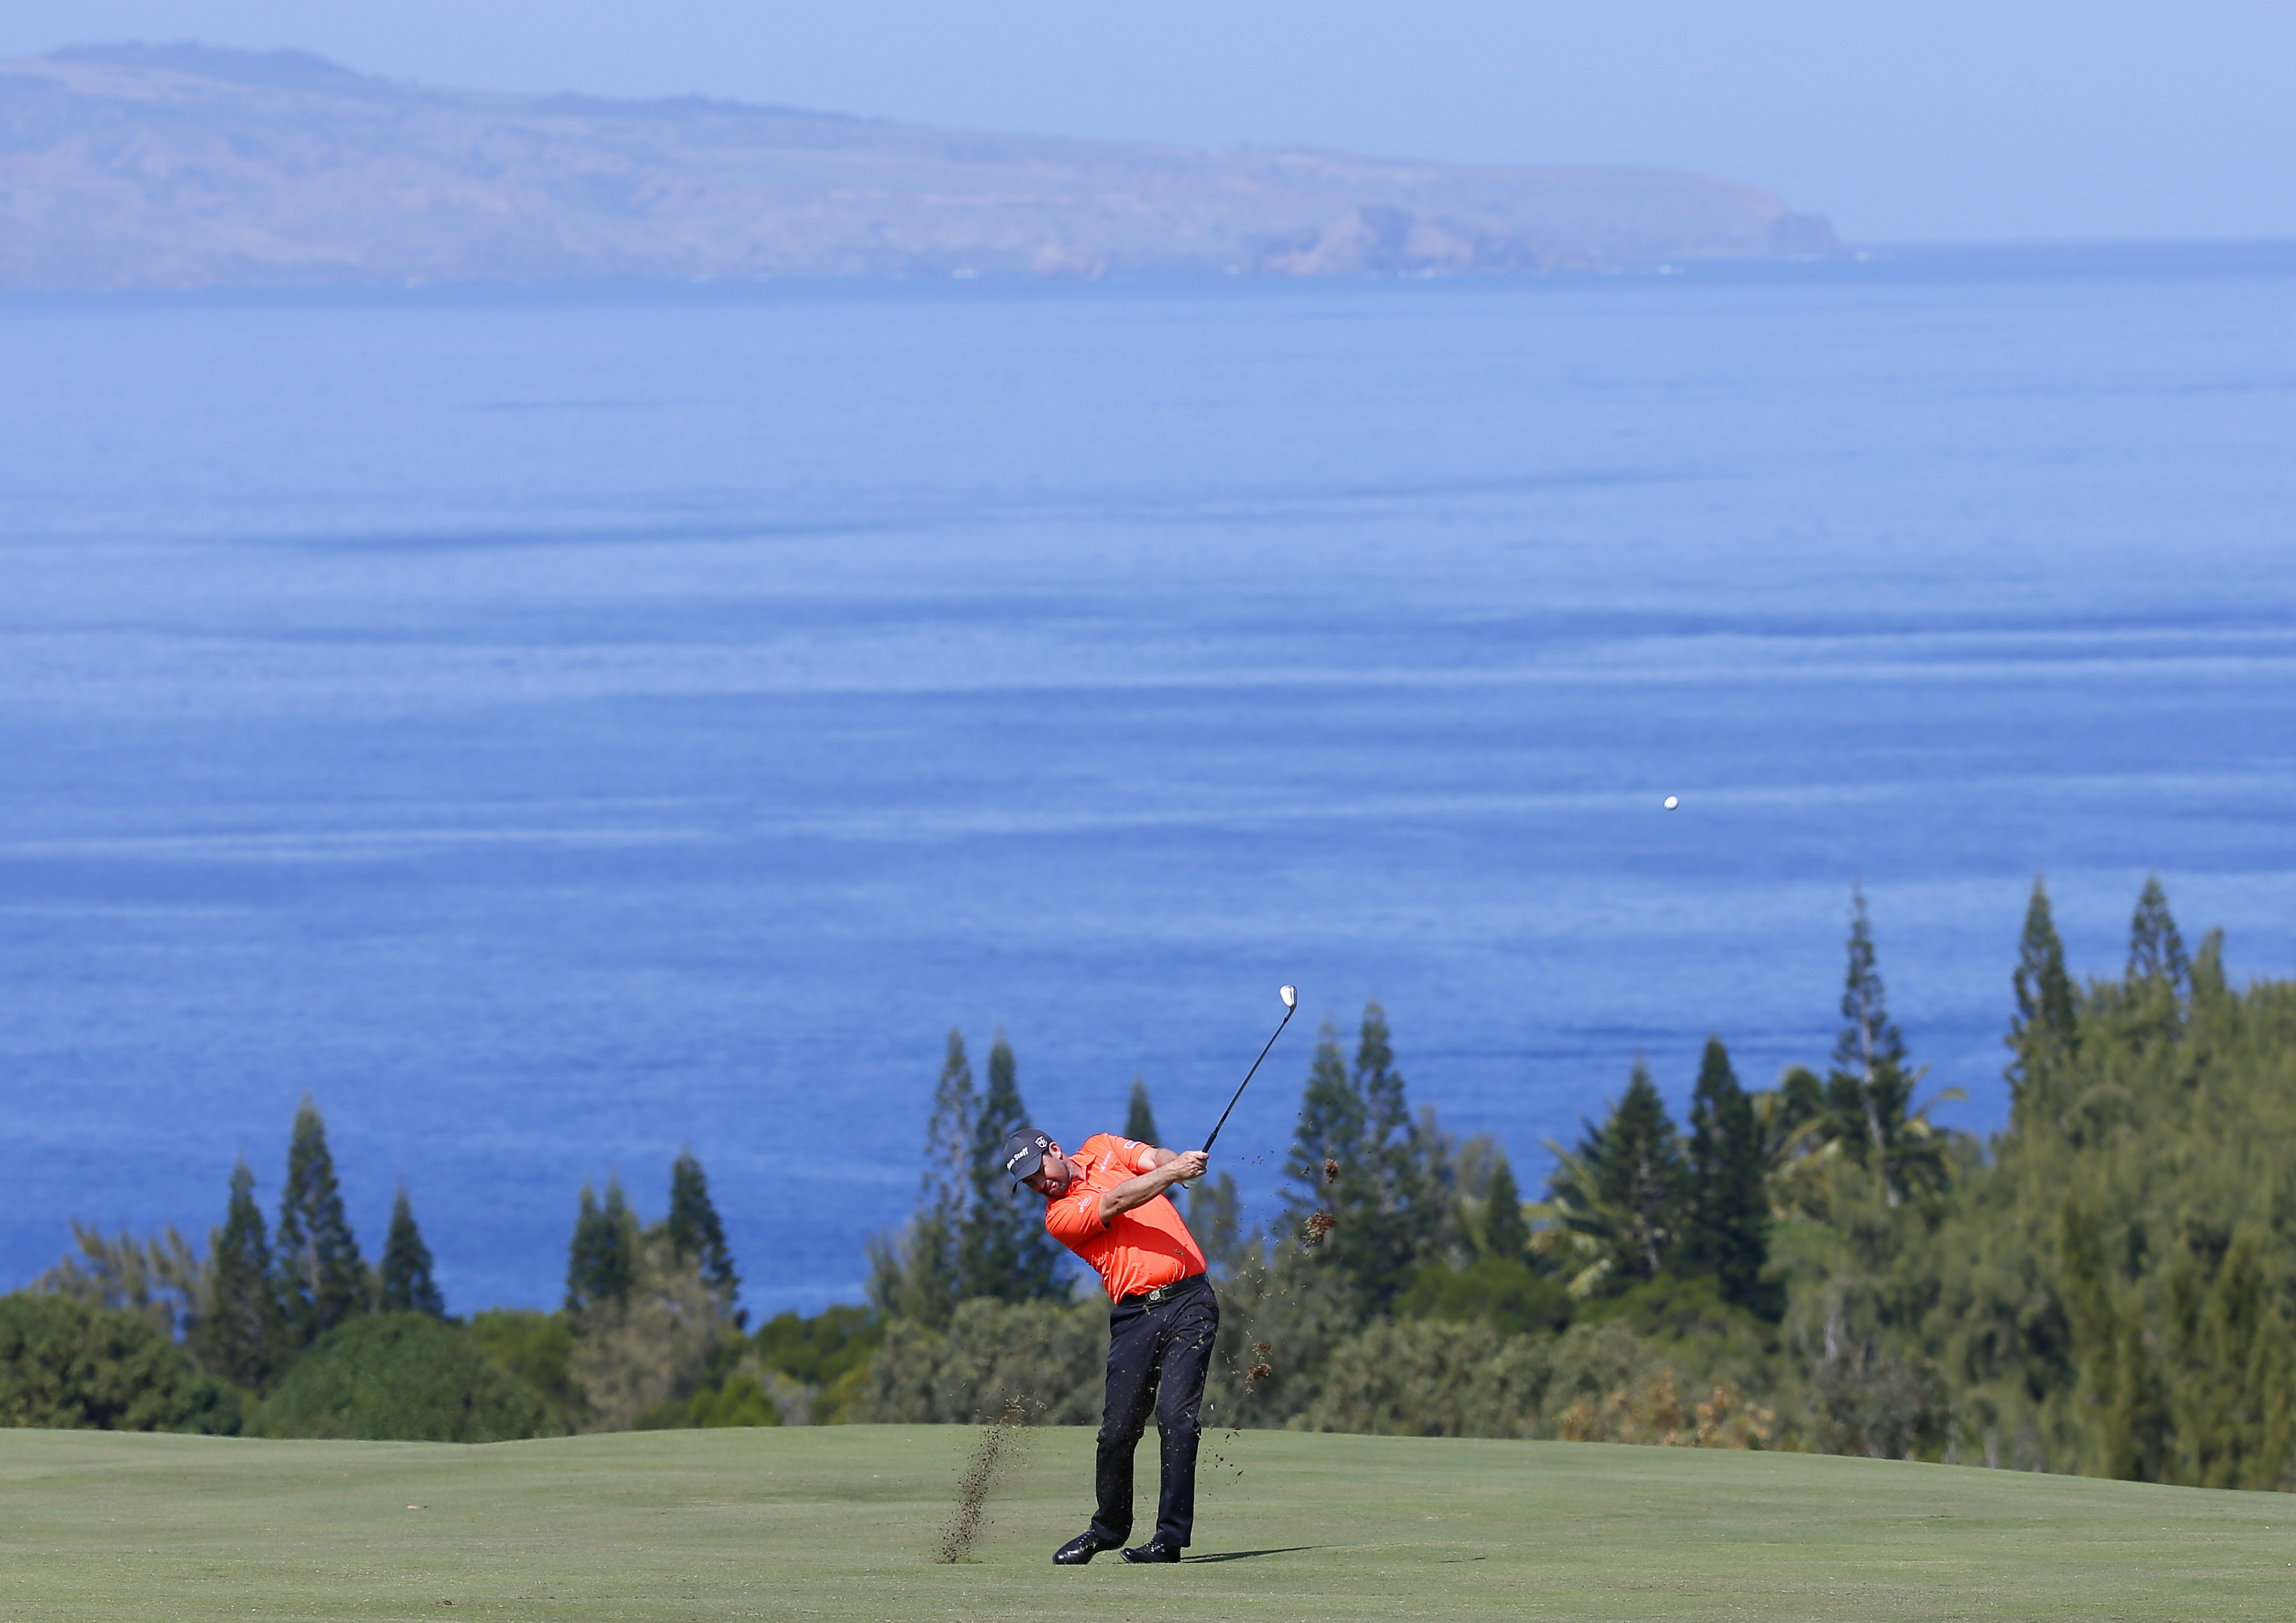 Padraig Harrington hits from the fourth fairway during the second round of the Tournament of Champions golf event Friday, Jan. 8, 2016, at Kapalua Plantation Course in Kapalua, Hawaii. (AP Photo/Matt York)